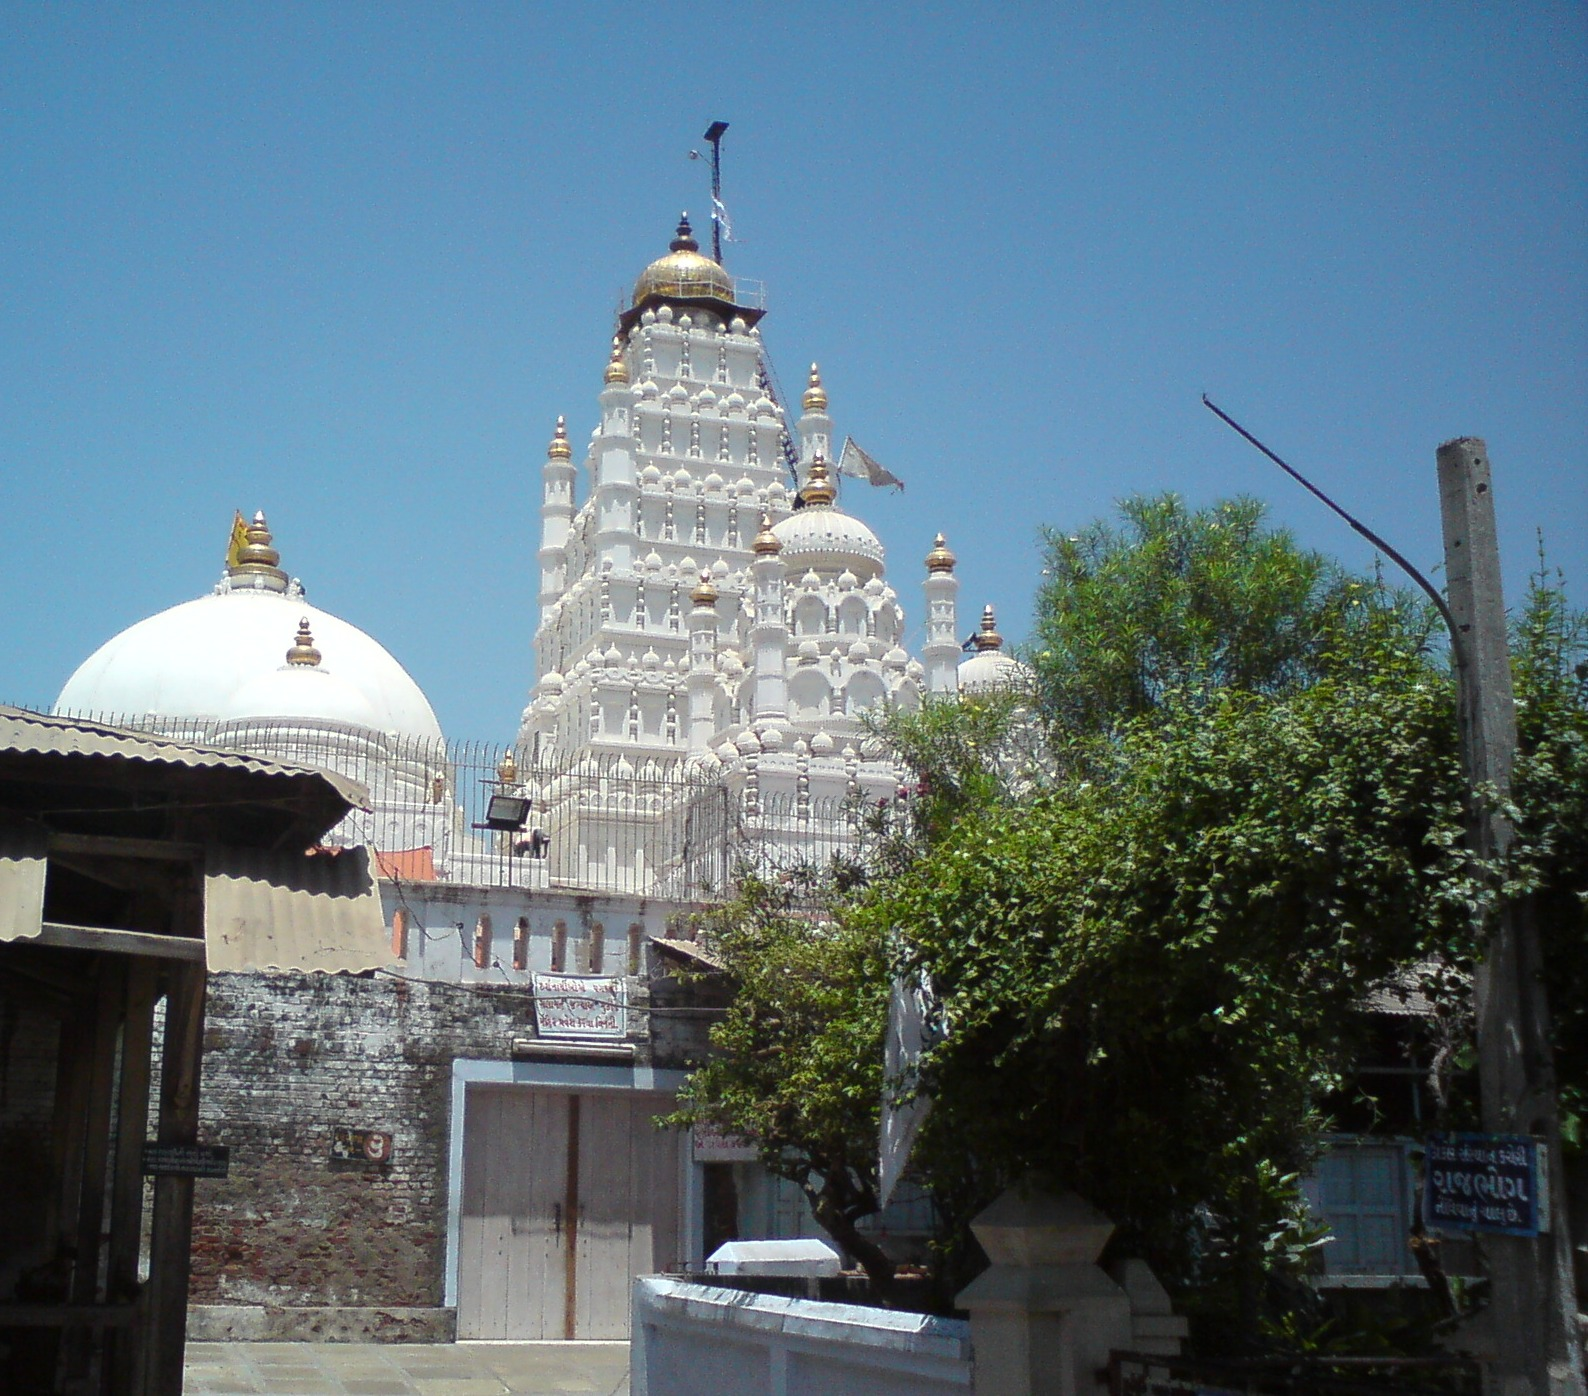 http://4.bp.blogspot.com/-8bK1lga6LMI/Ta_c7v7QvRI/AAAAAAAAAQ4/mOsCp-PqGjI/s1600/the-famous-hindu-temple-of-gujarat-at-dakor-wallpapers.JPG